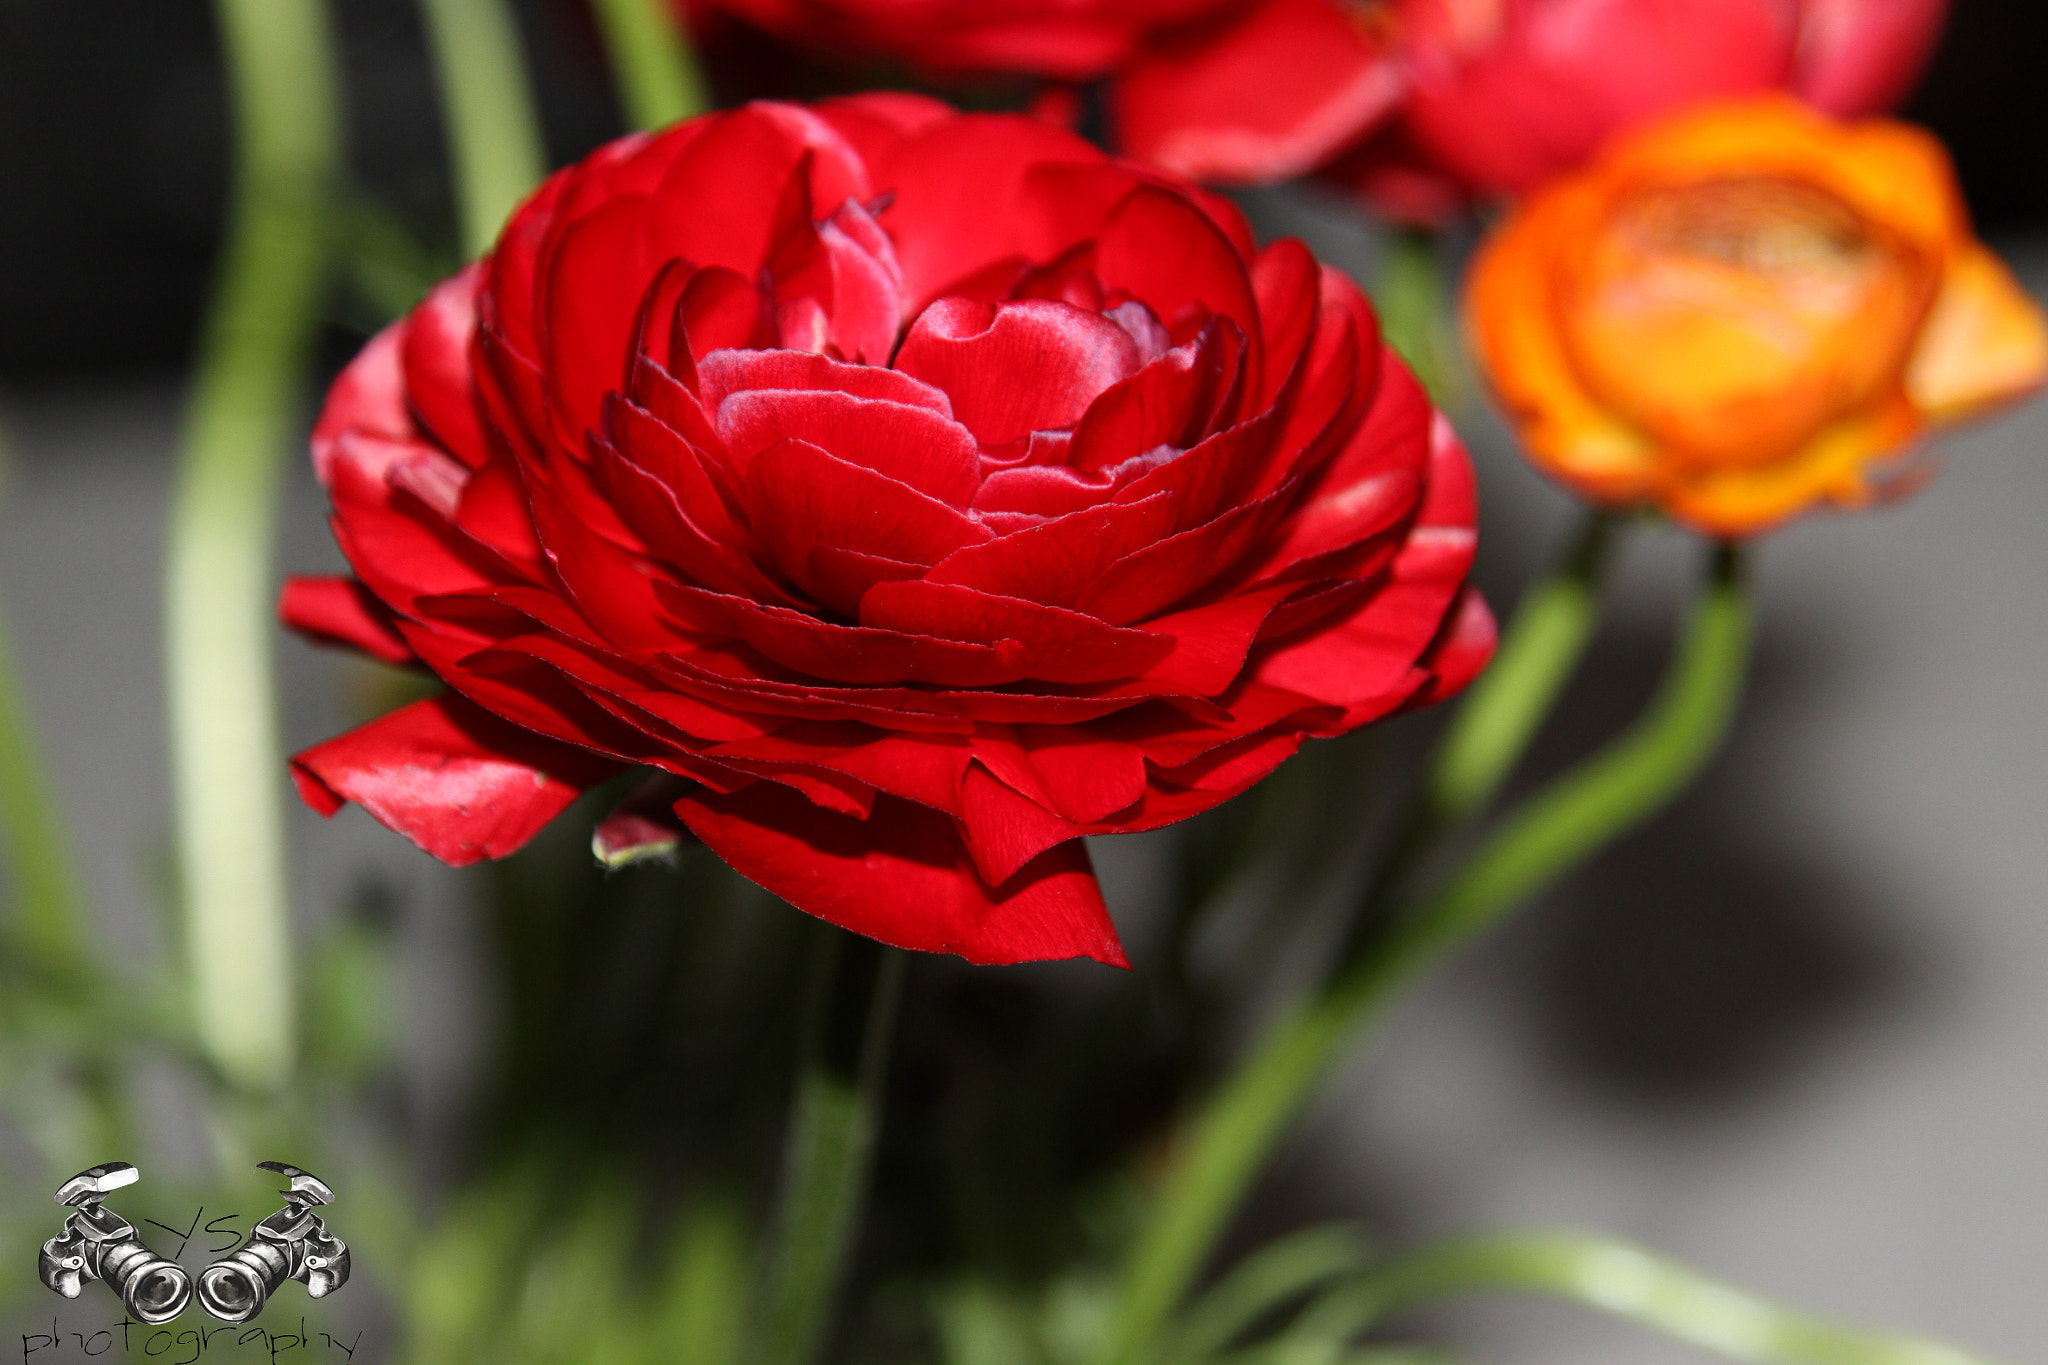 Photograph Rose by yuval shohat on 500px